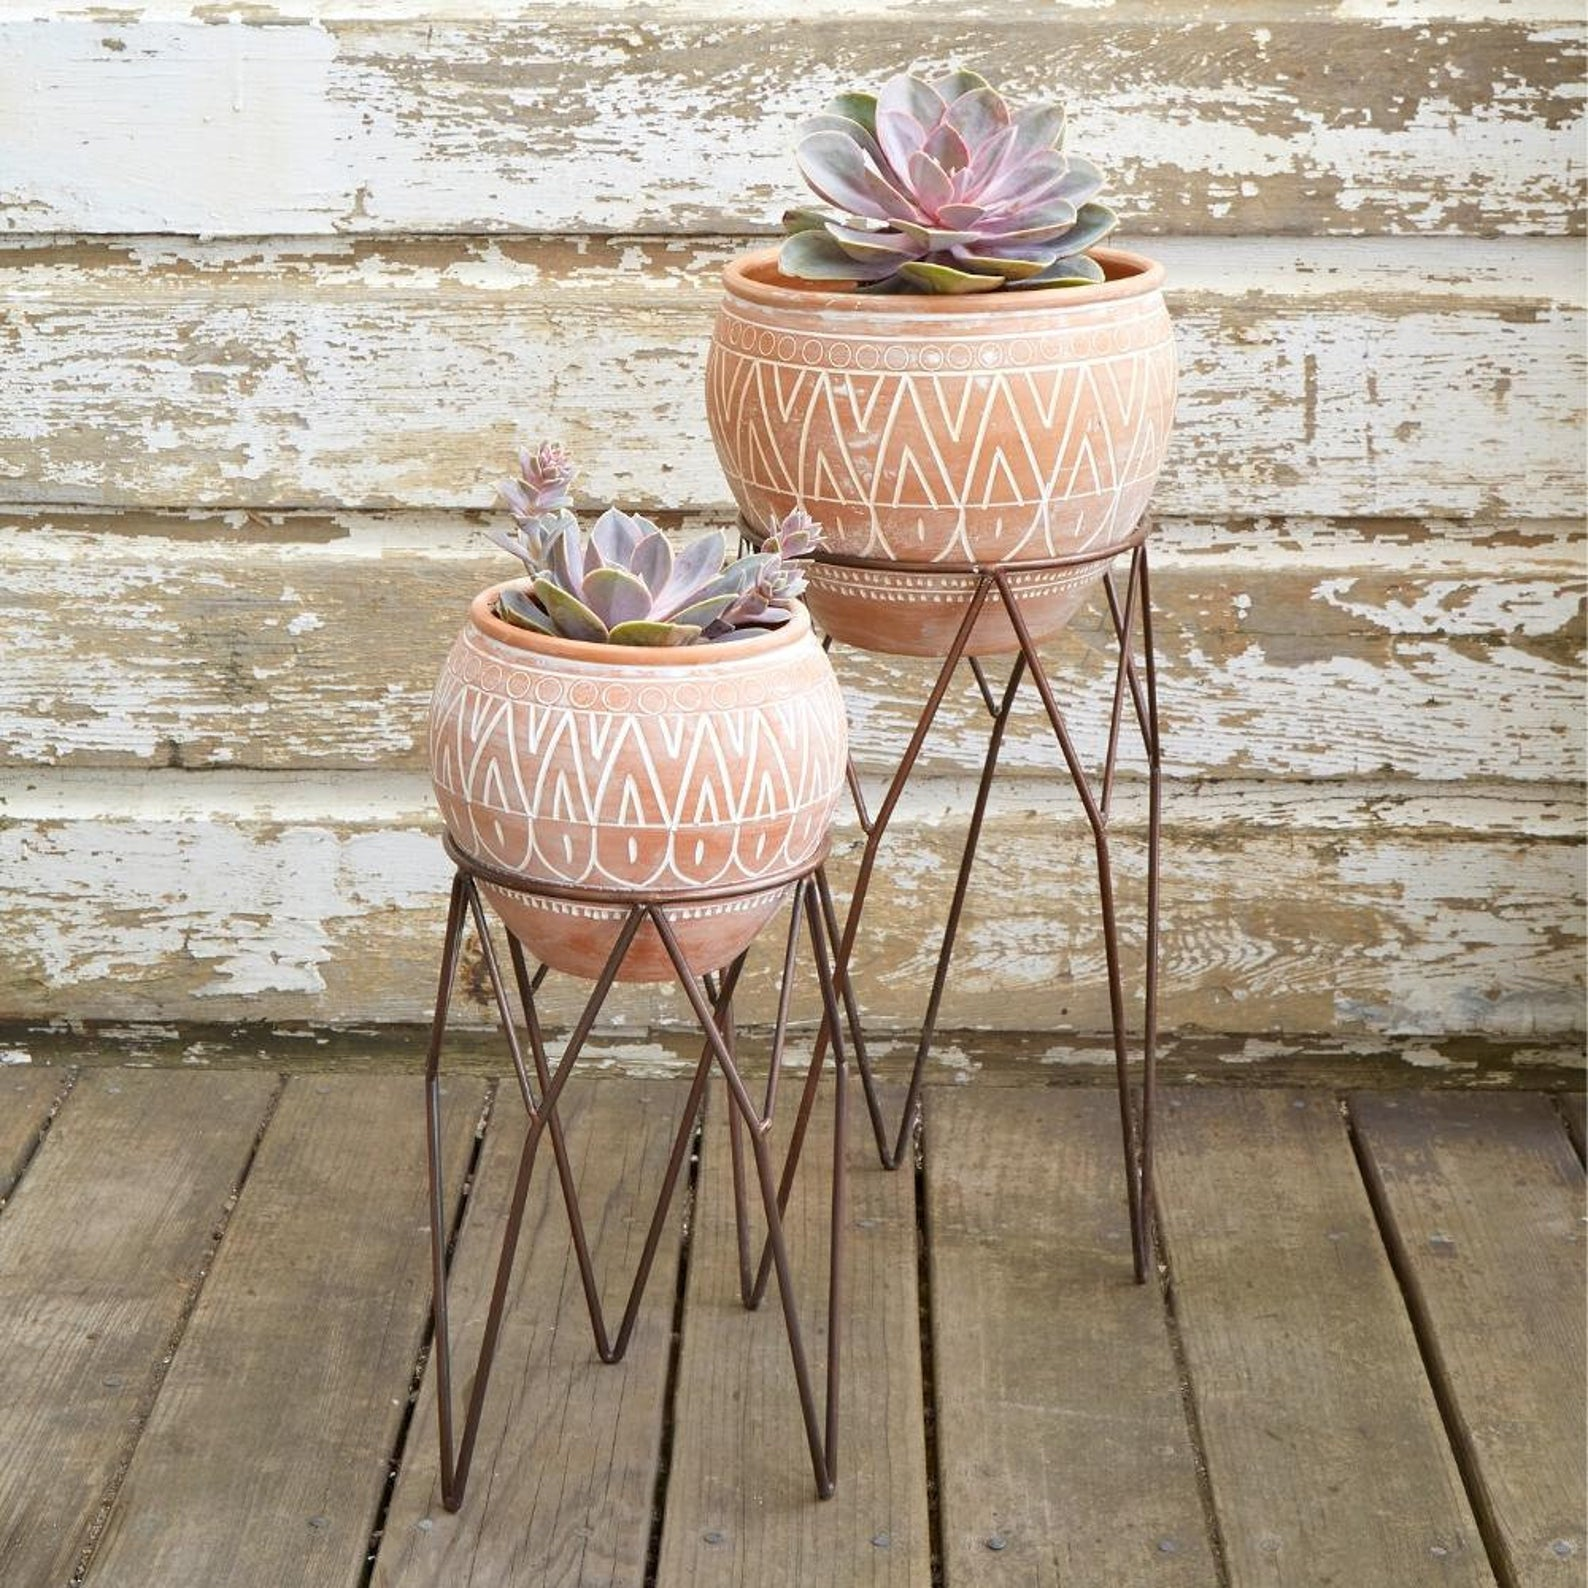 Terracotta-pots-with-metal-stands-42693